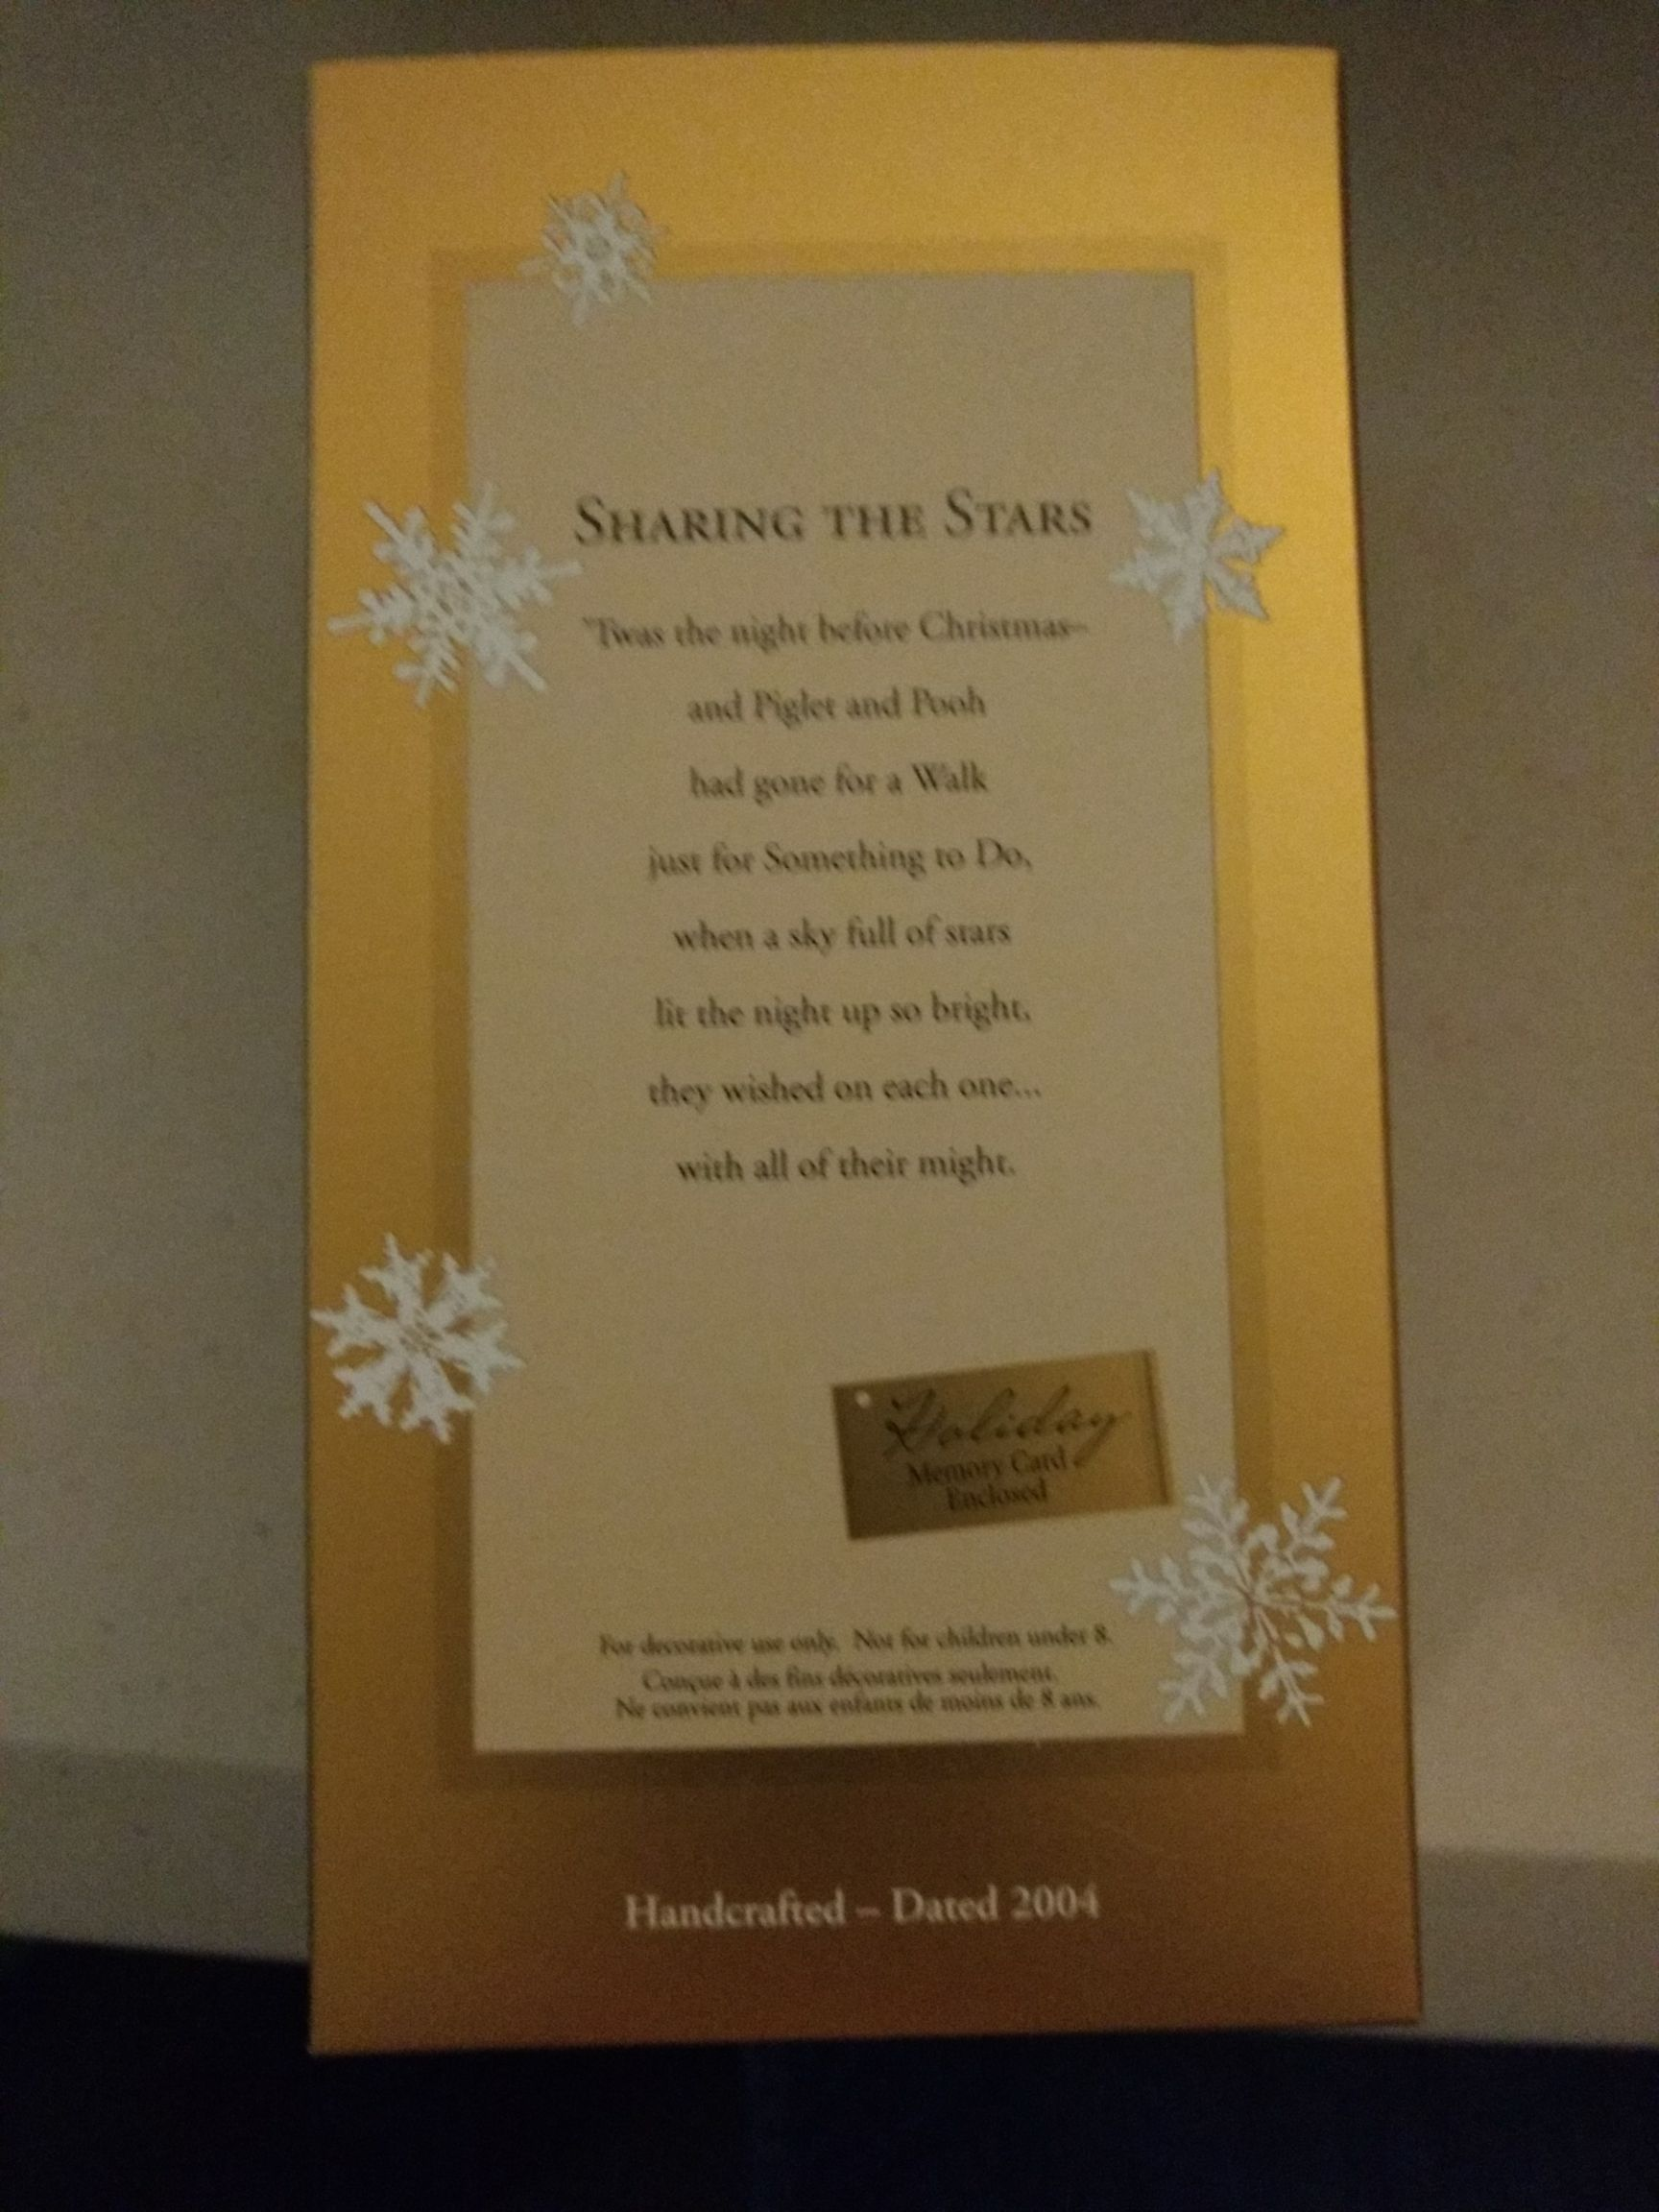 Sharing the Stars Ornament (2004) back image (back cover, second image)